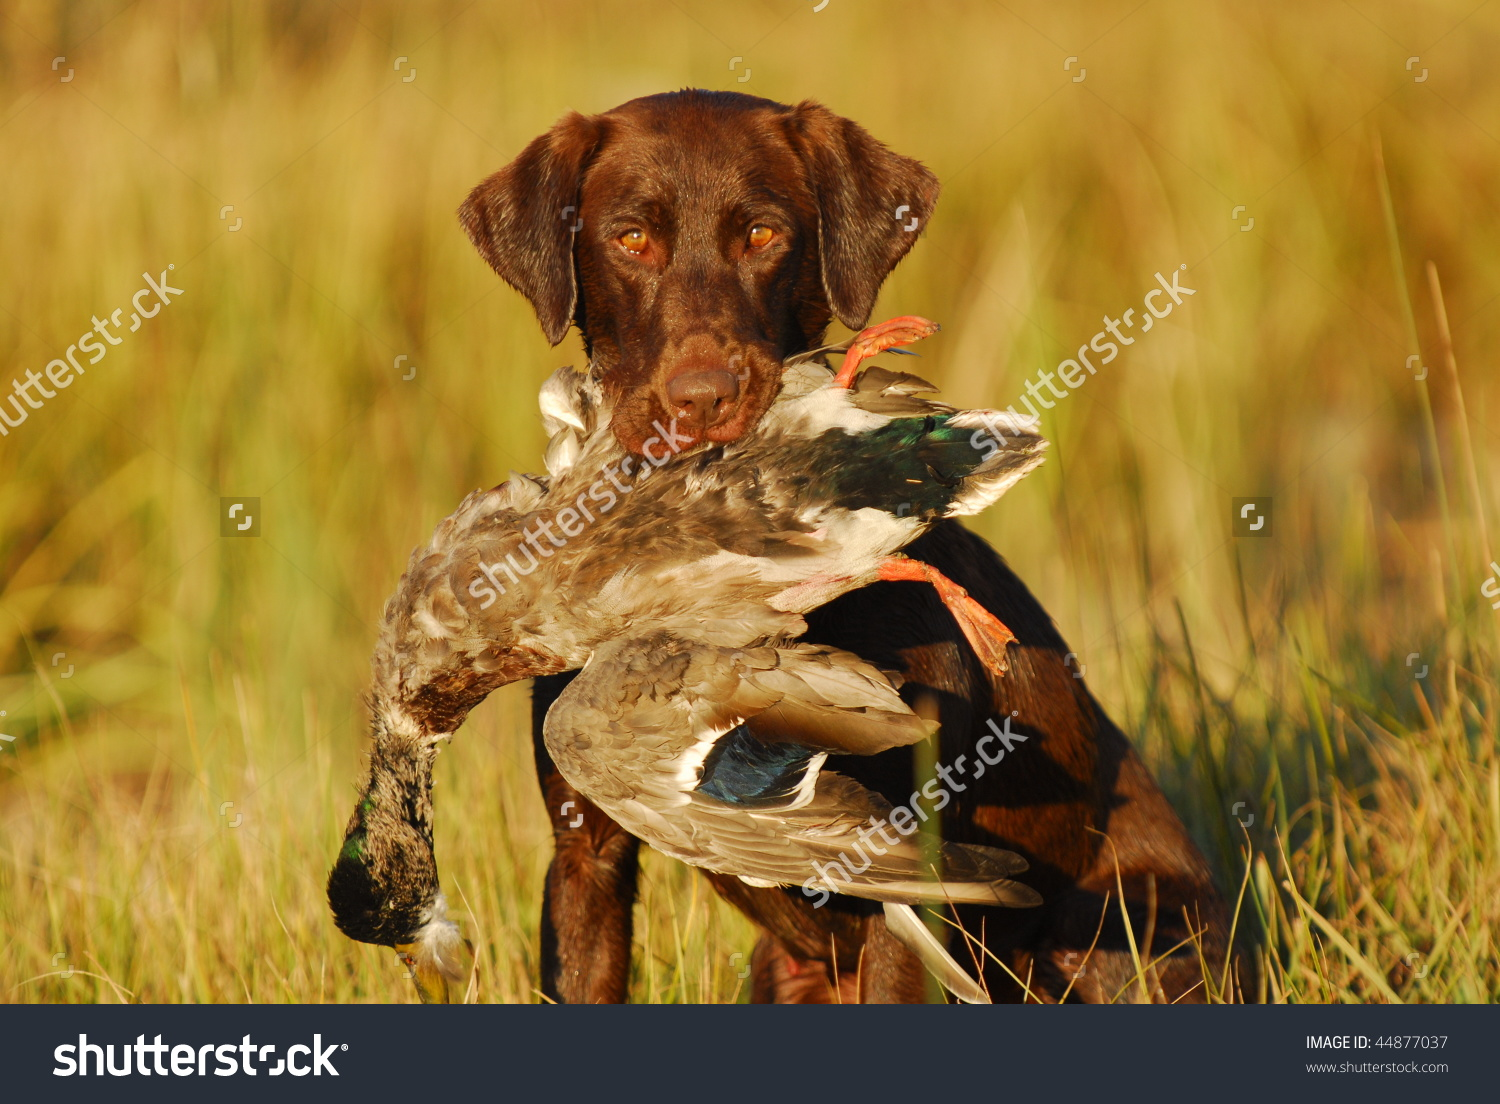 Labrador Hunting Dog Holding Mallard Duck Stock Photo 44877037.